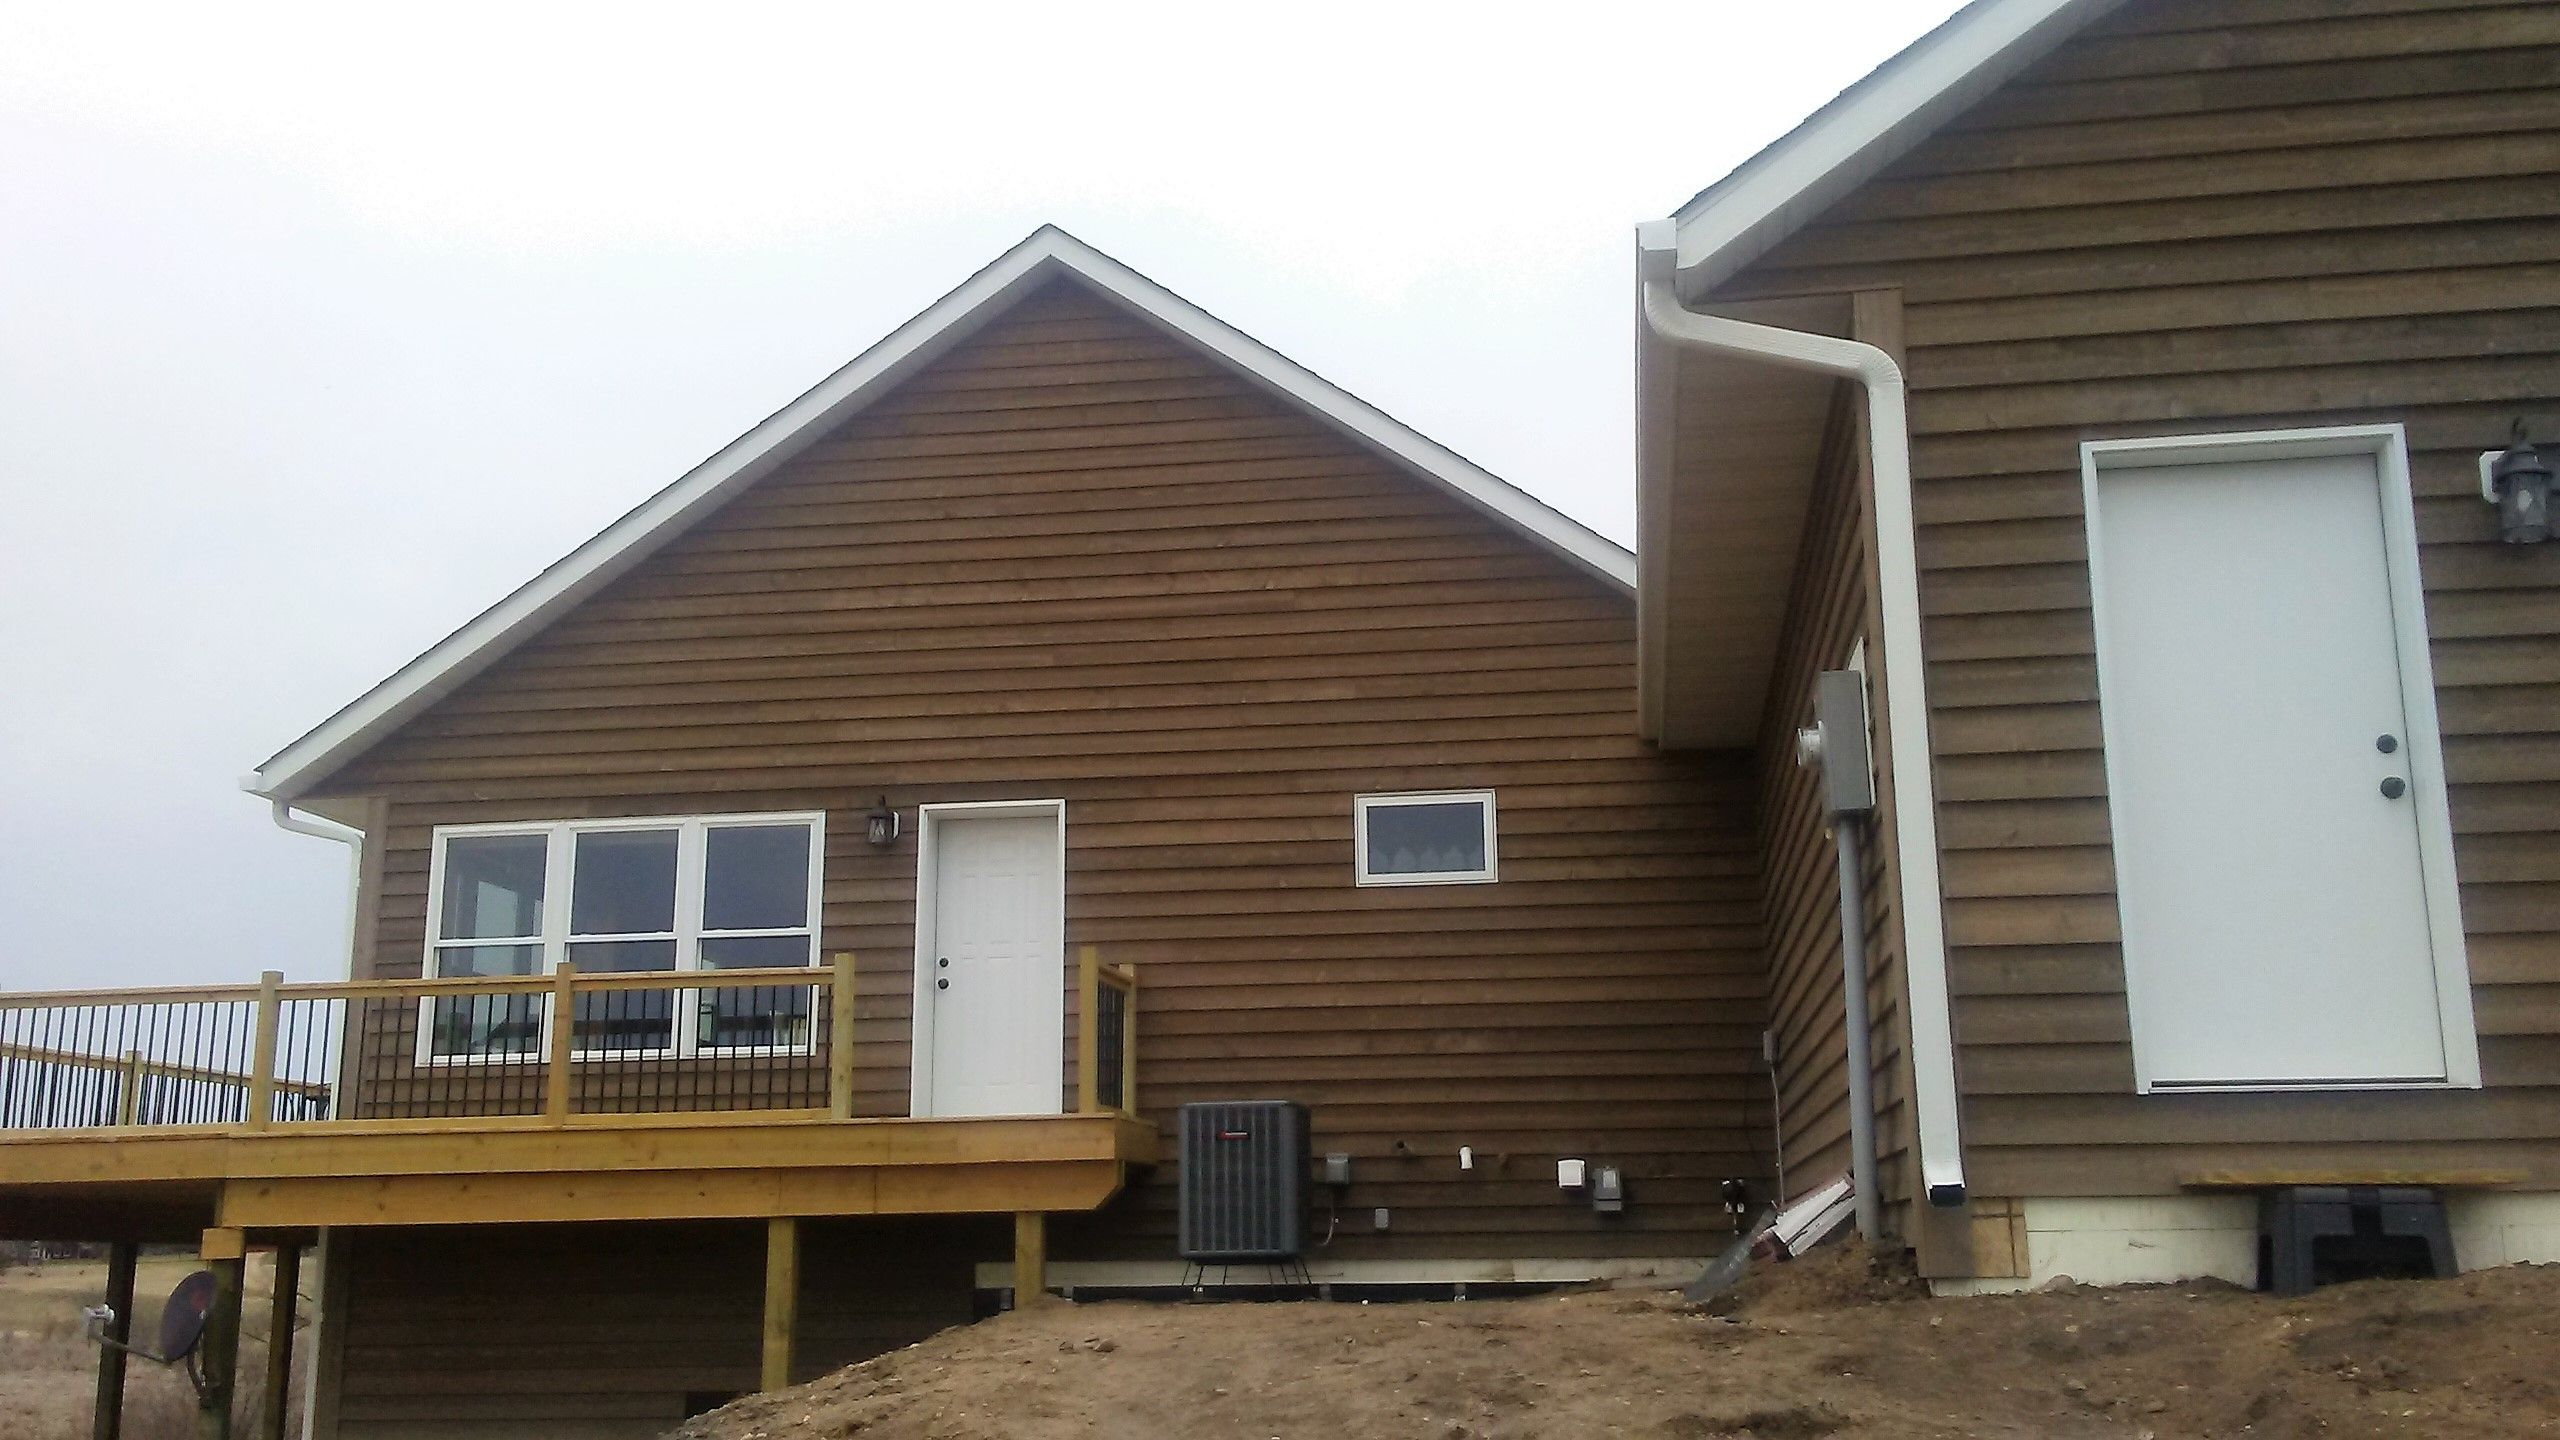 Leafguard Gutters Installed On New Construction In New London Minnesota Seamless Gutters Curb Appeal Installation